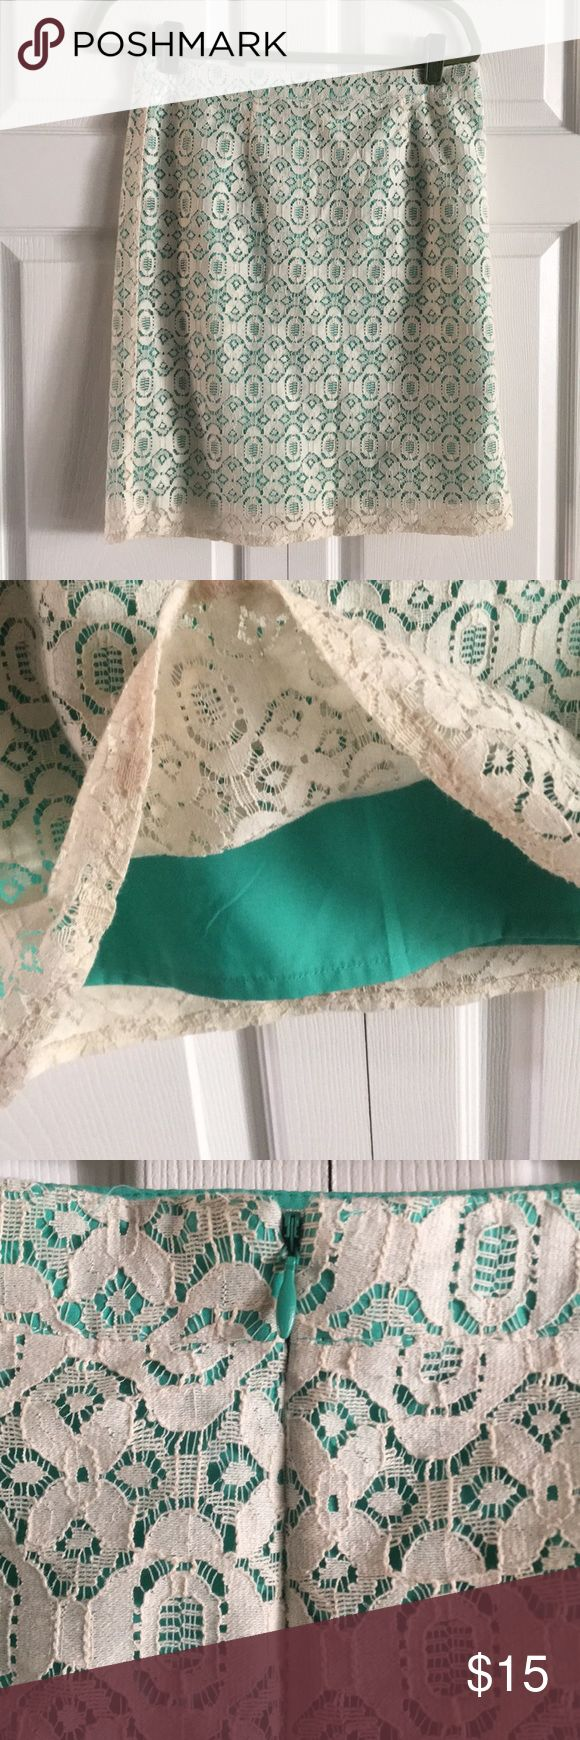 Green and cream lace skirt Mint green and cream lace skirt. Skirt hits at knee length and is perfect for the office or church. Straight lines of skirt make it pencil-ish without being tight. Willi Smith Skirts Pencil